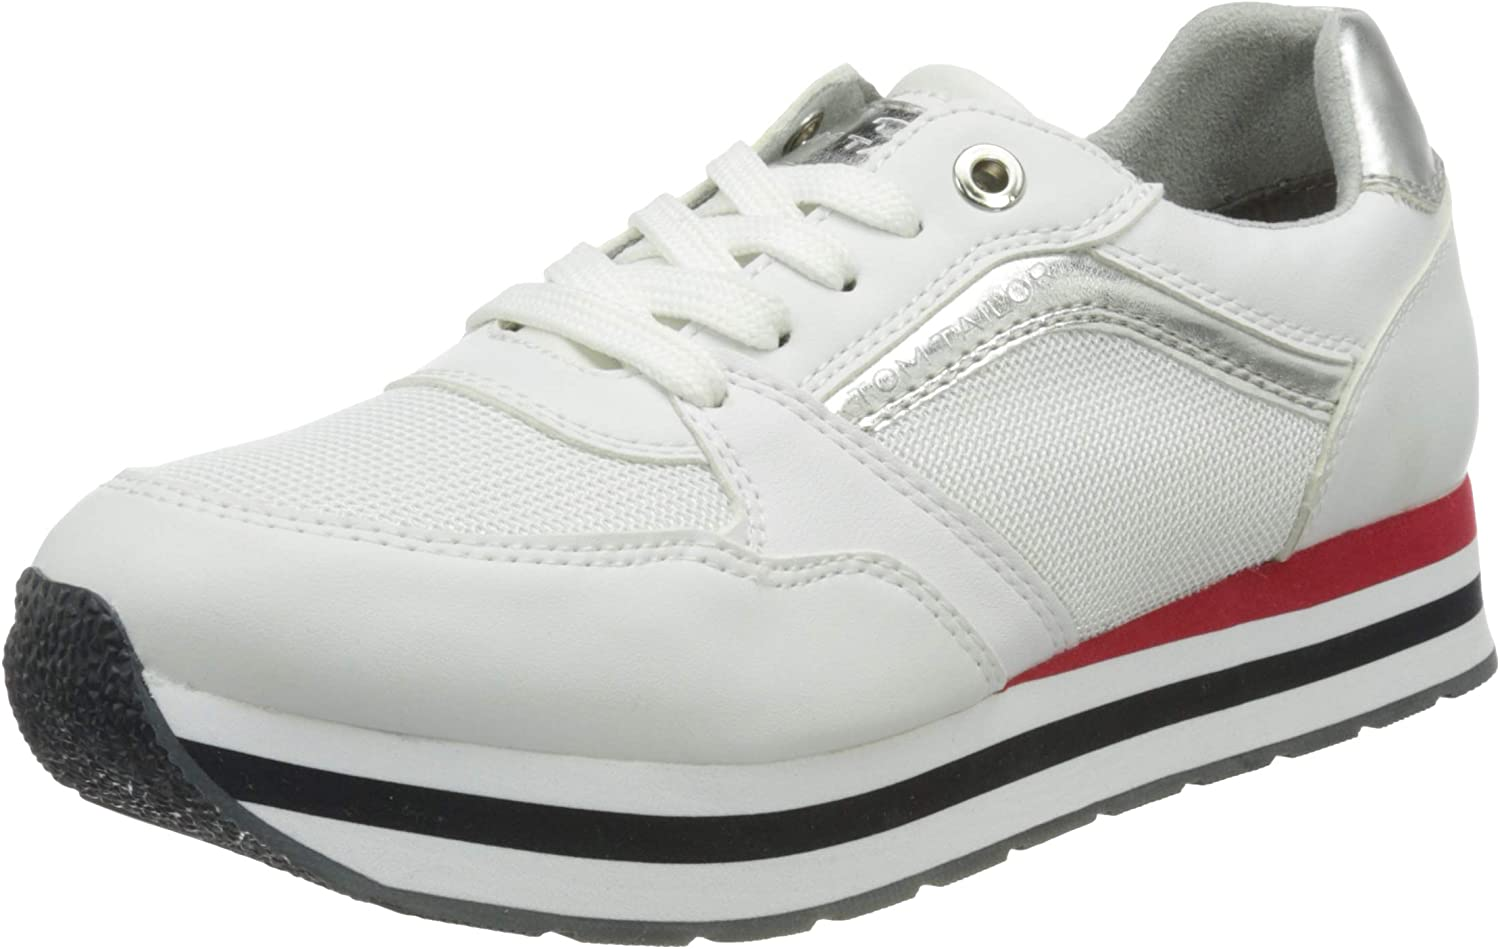 Tom Tailor Tampa Mall Women's Low-top Sneakers 100% quality warranty